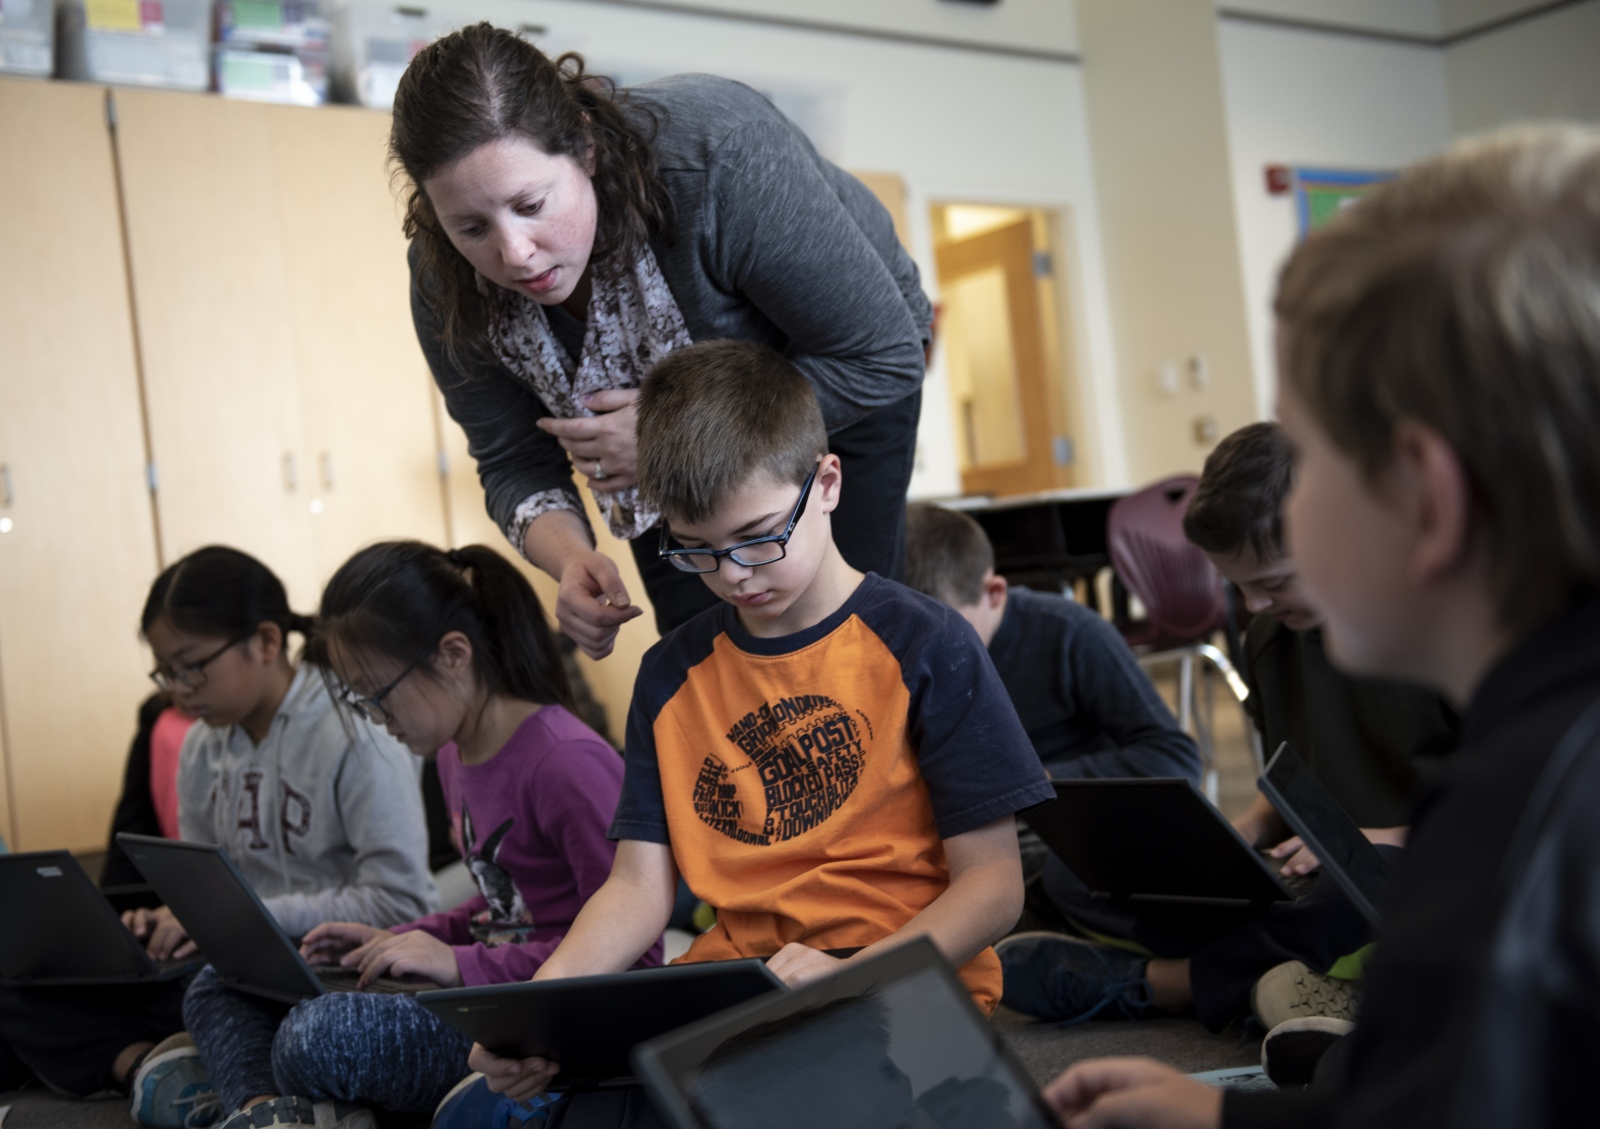 Tara Pollick helps her student, Caleb Kraft, think about a question showing in the laptop in the STEM class on Oct. 17, 2018, at Ferguson Township Elementary School in State College, Pa. Pollick, a STEM teacher at Ferguson Township Elementary School, said she liked helping her students approach solutions.